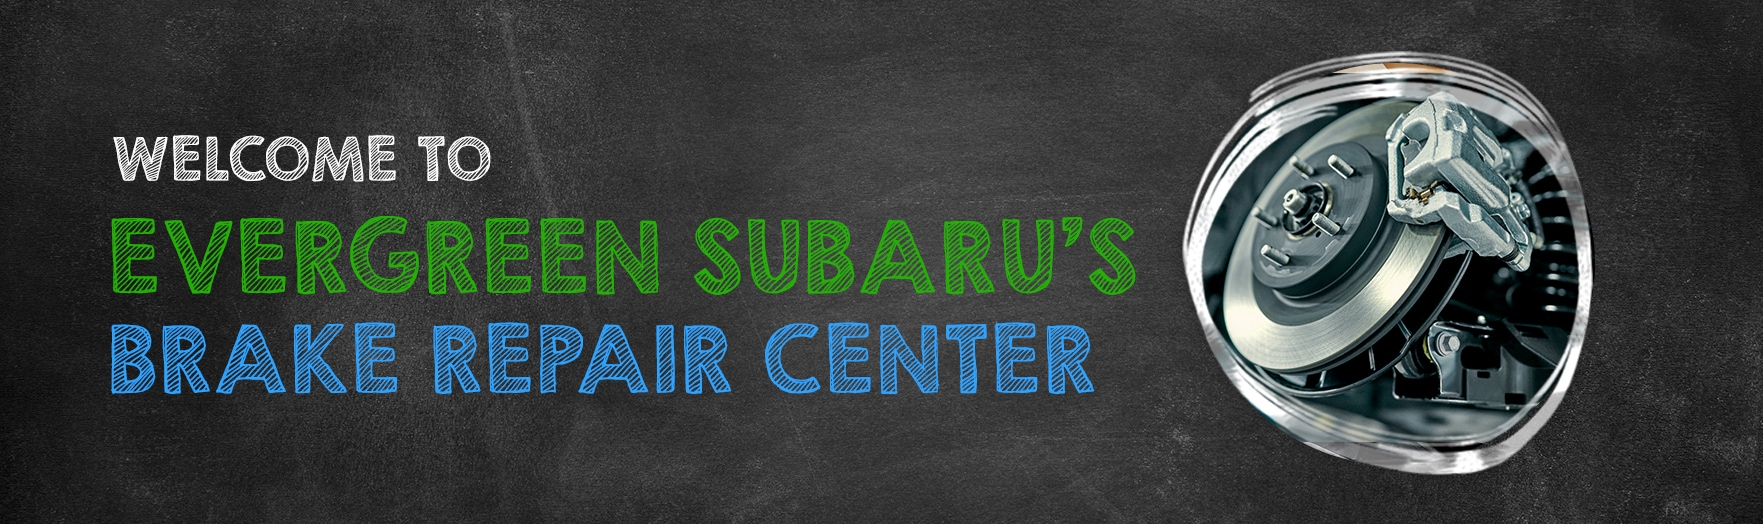 Welcome to the Evergreen Subaru Brake Repair Shop